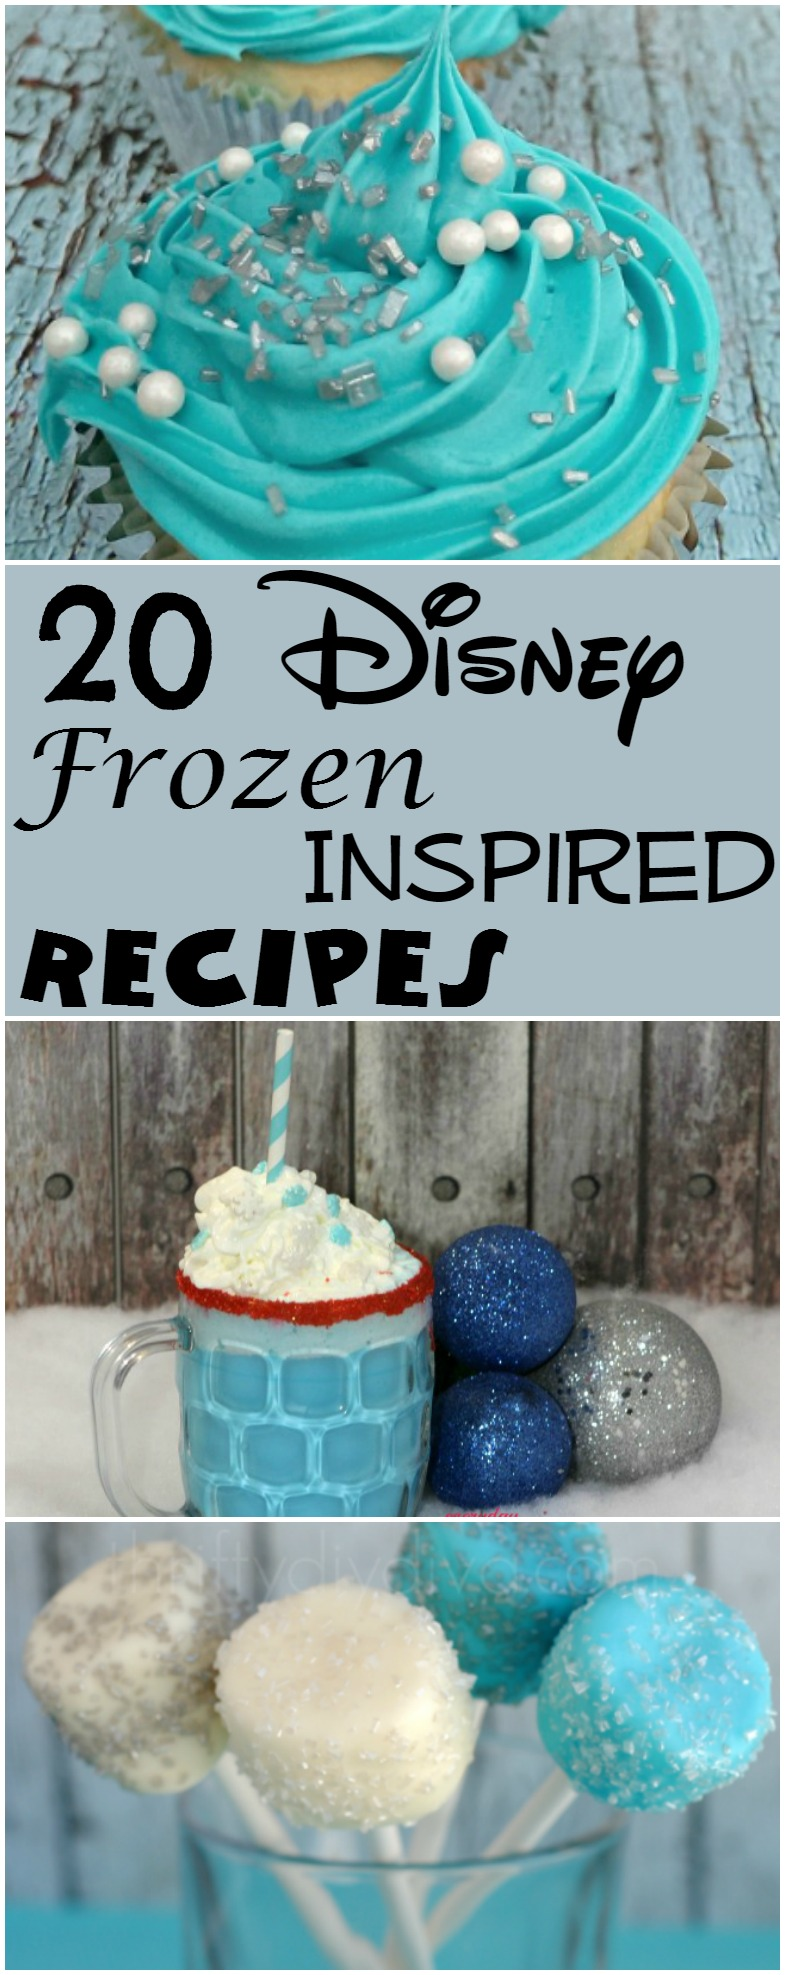 20 Disney Frozen Inspired Recipes